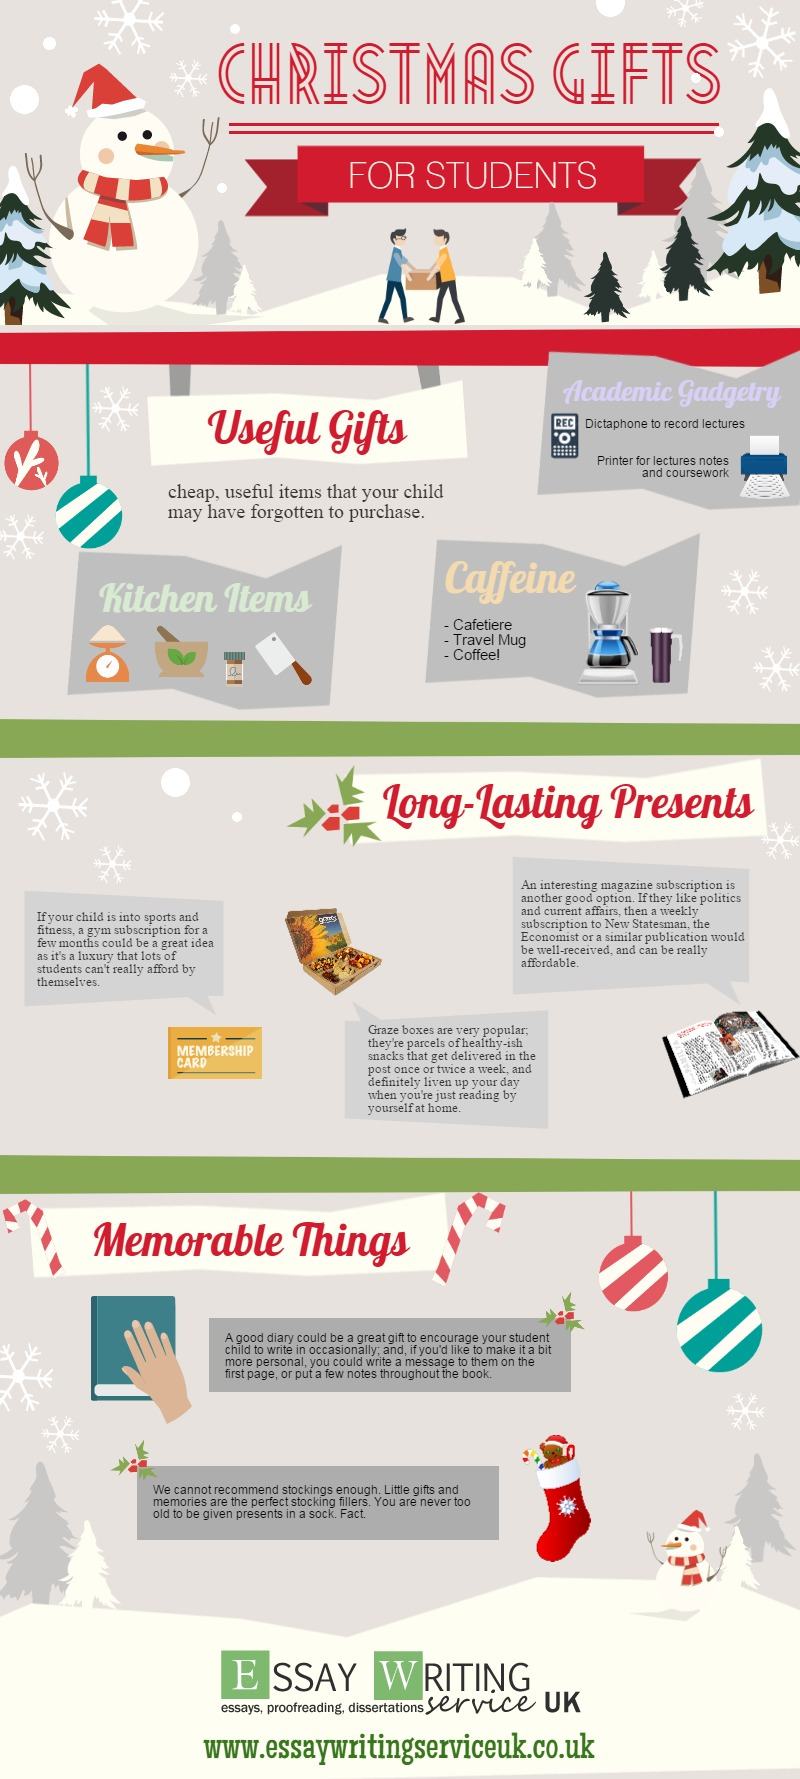 Christmas Gift Ideas For Students | Visual.ly